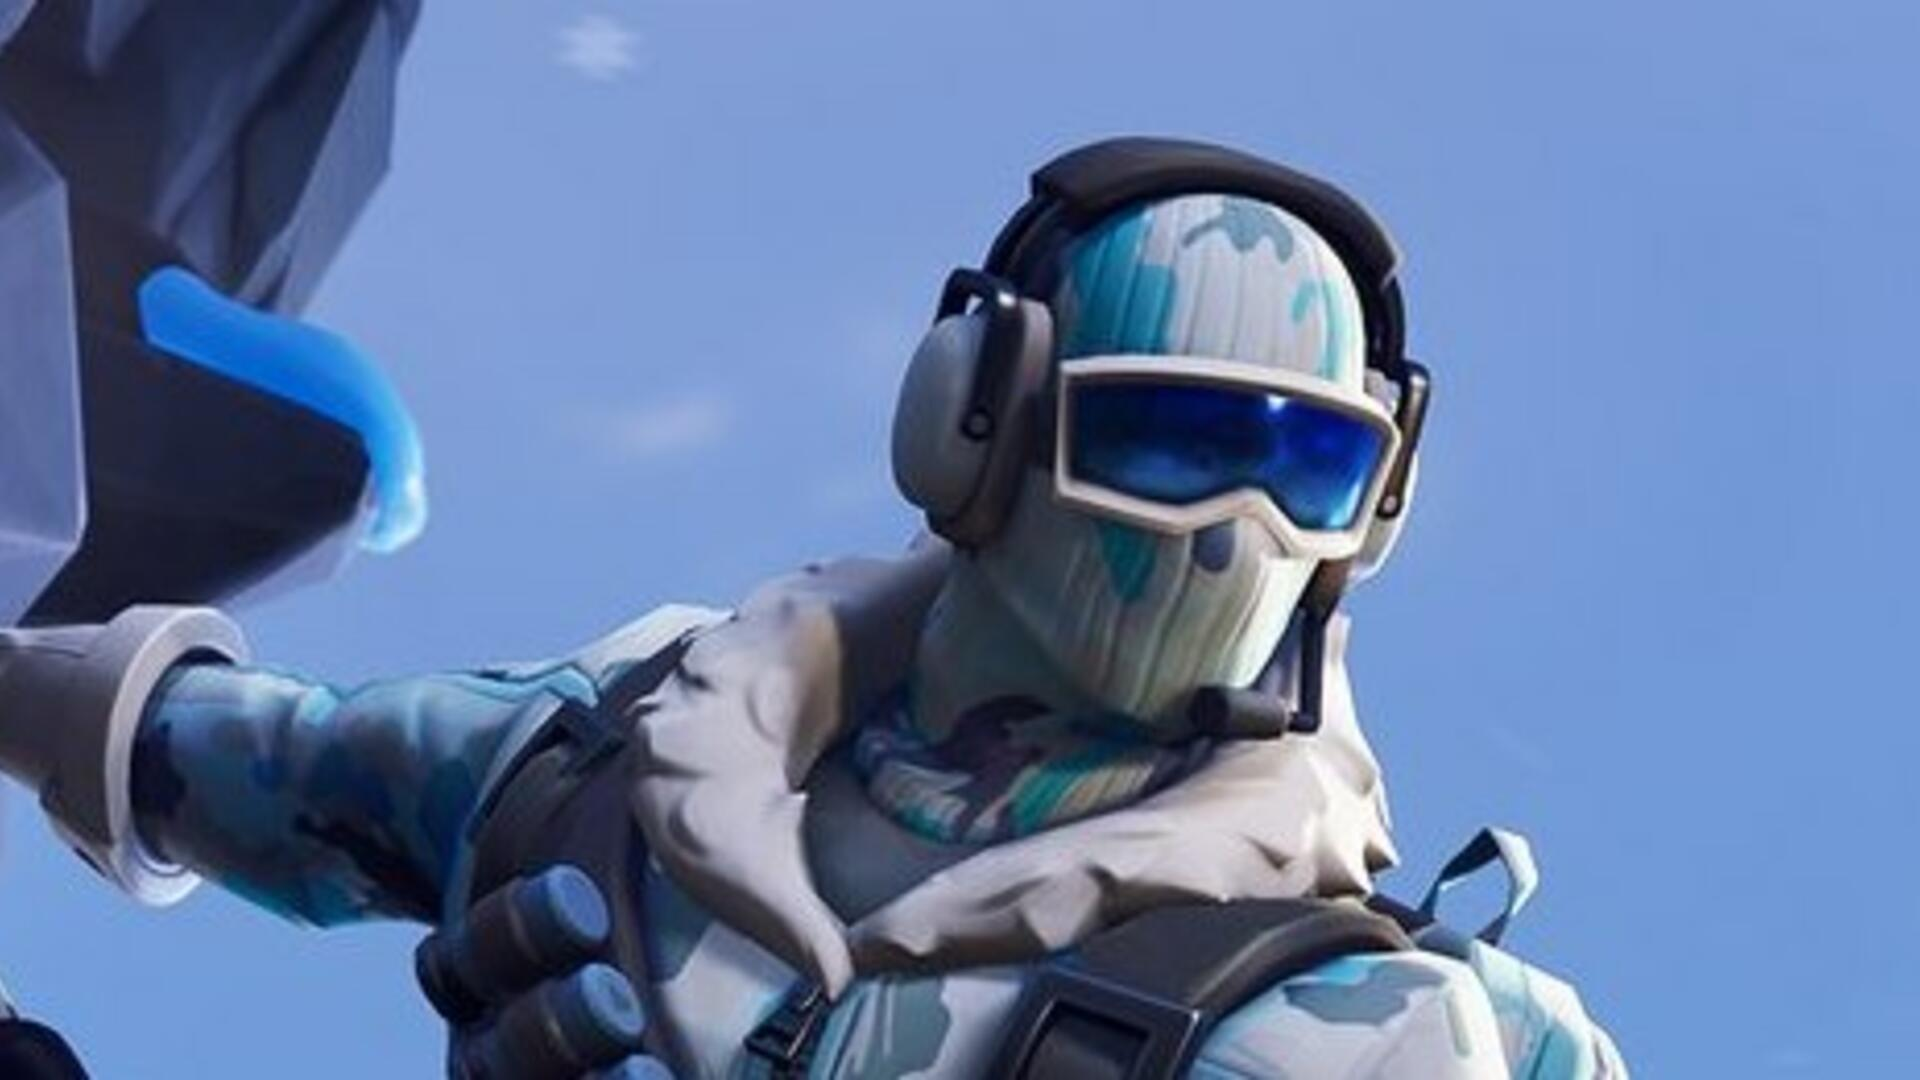 Fortnite Ski Lodges Guide - Where to Search Between Three Ski Lodges for the Fortnite Week 3 Challenges